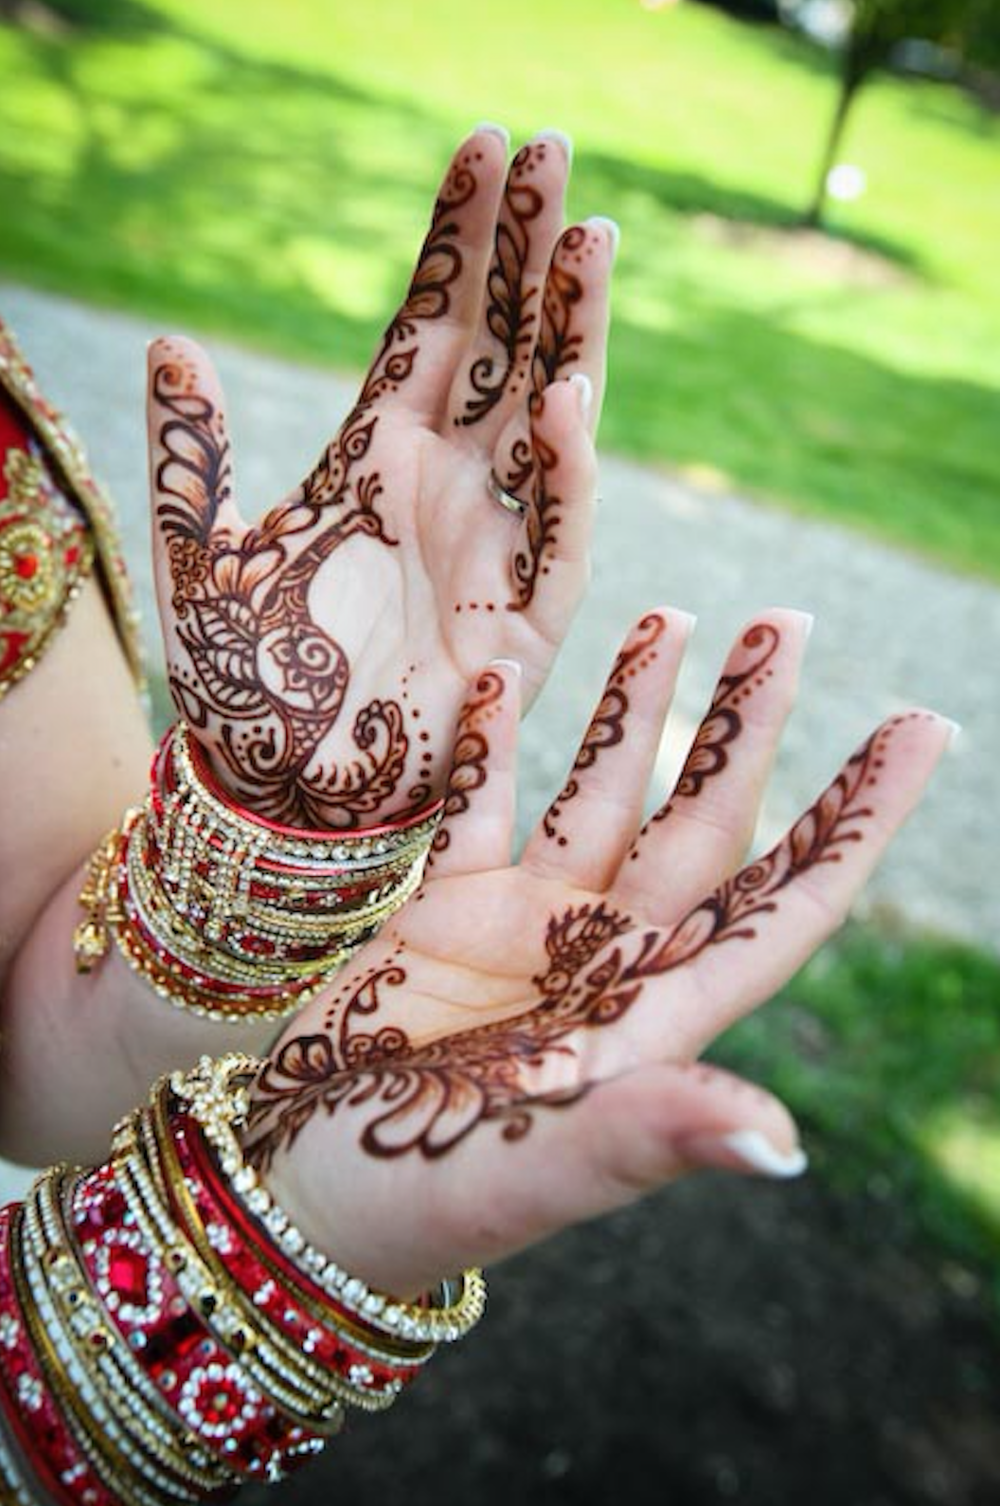 Simple bridal mehndi shows off how dark the color of henna can get on your palms. (Photo by Jim Sanders, Henna by Deborah Brommer)